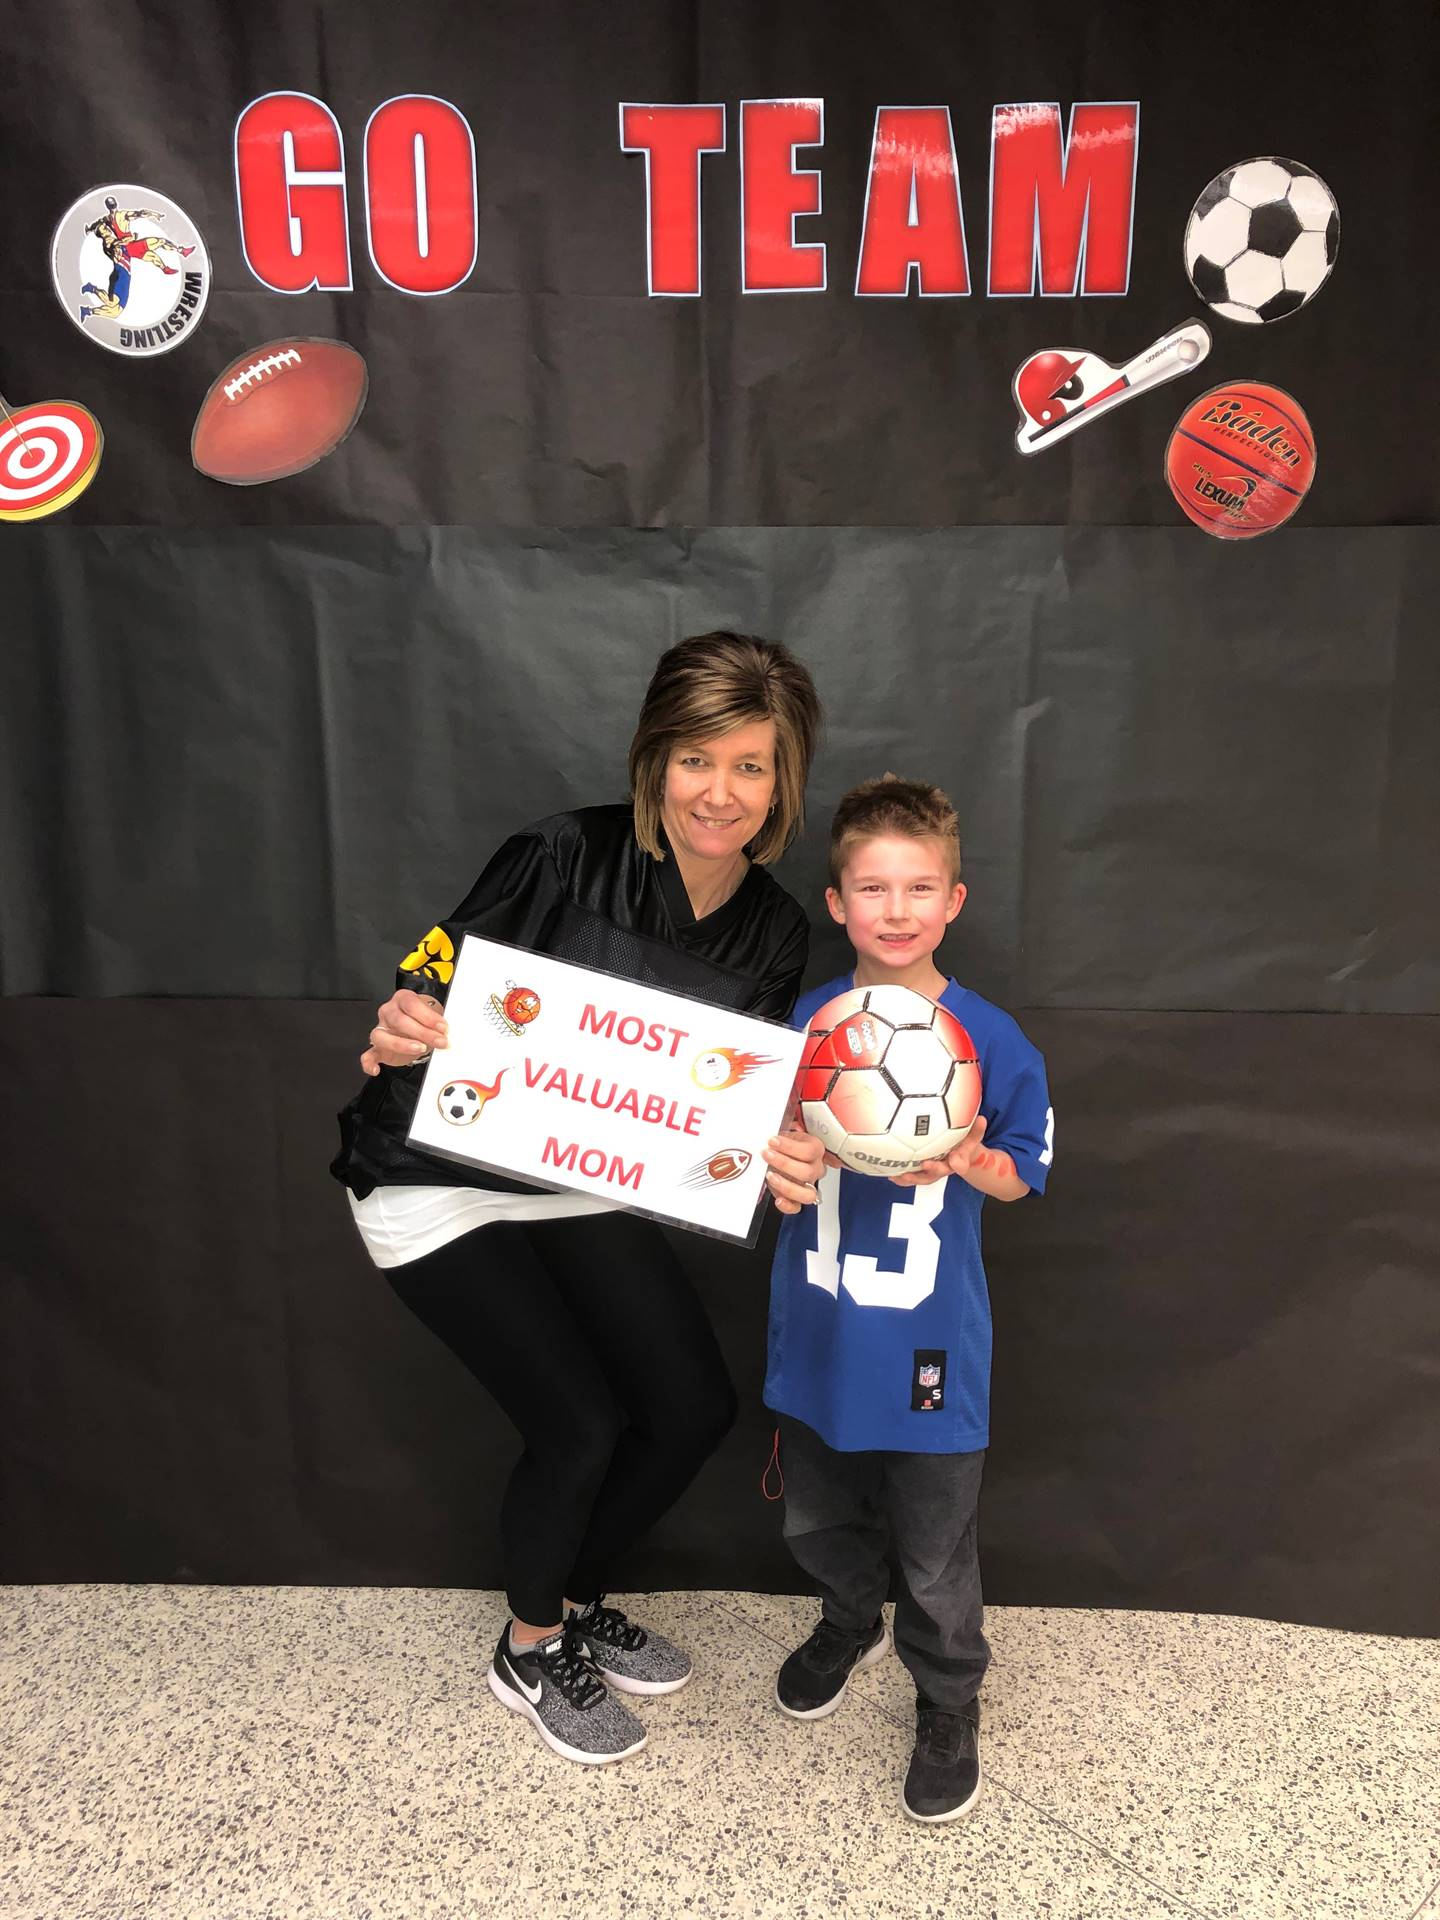 Mother and Son posing for pictures for Sports night at school